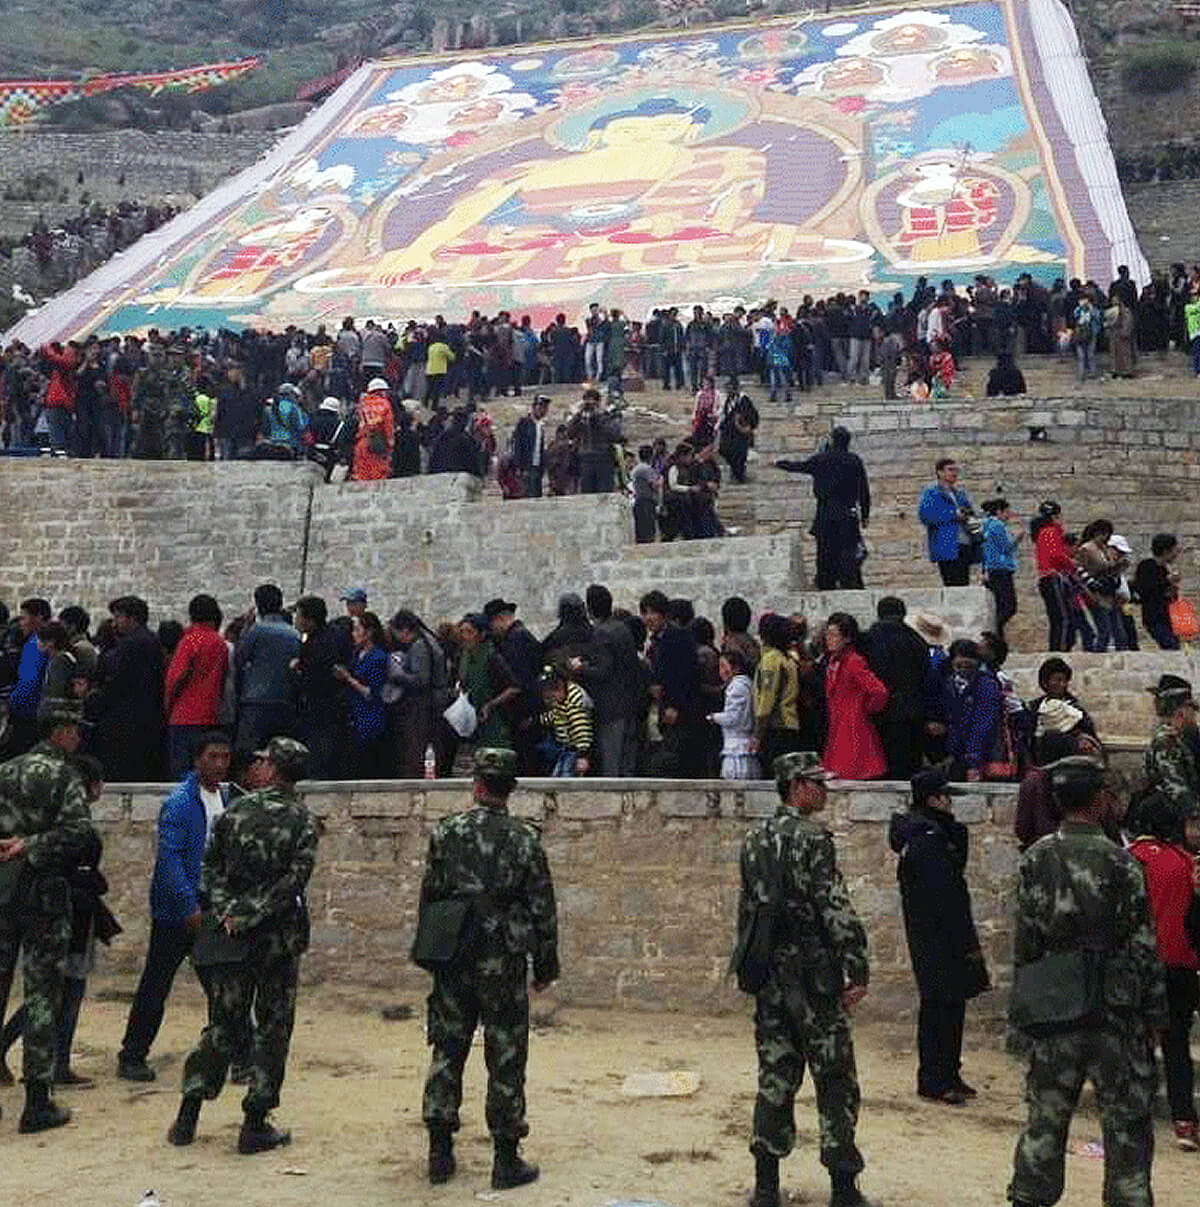 Latvian Academic Peddles China's Deceptions On Buddhism In Tibet